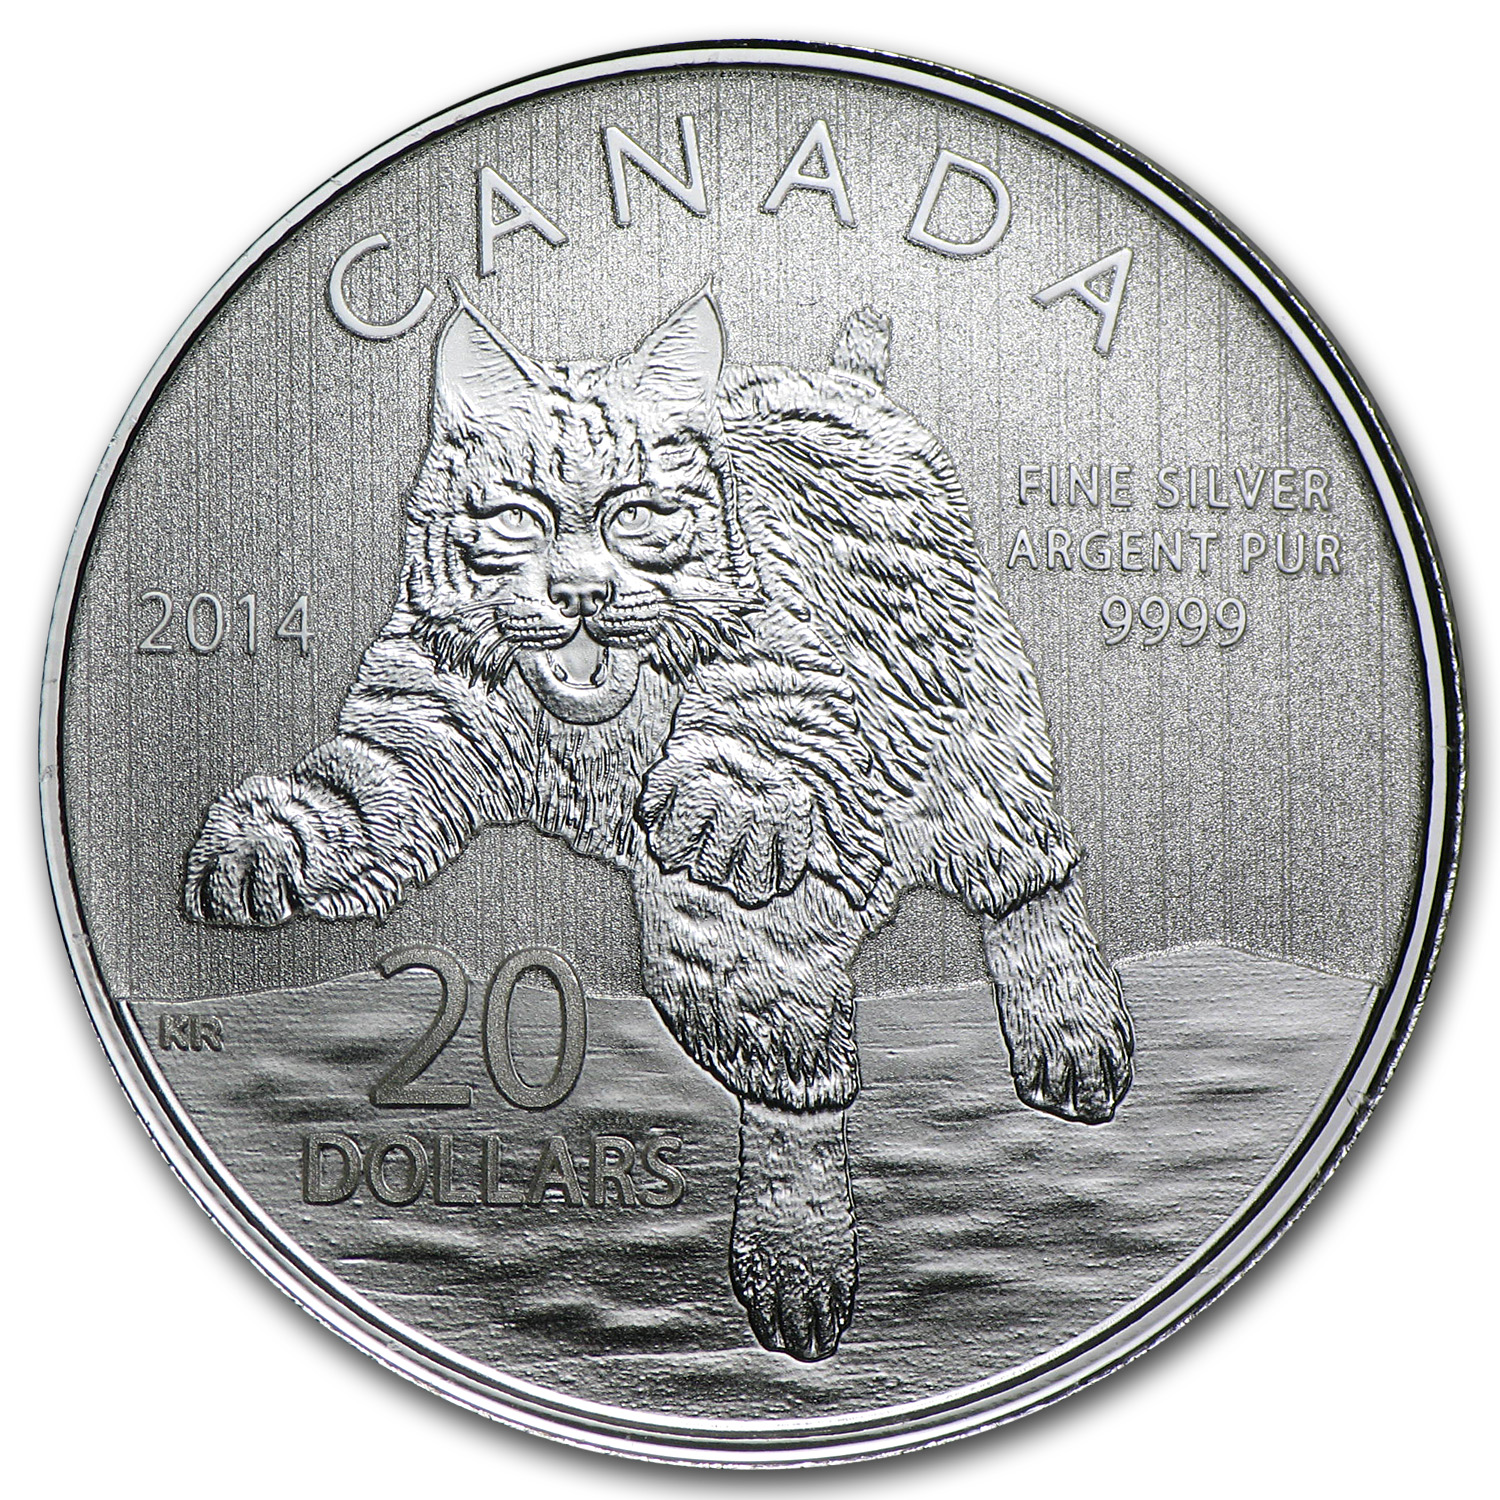 2014 1/4 oz Silver Canadian $20 Bobcat (No Box or COA)